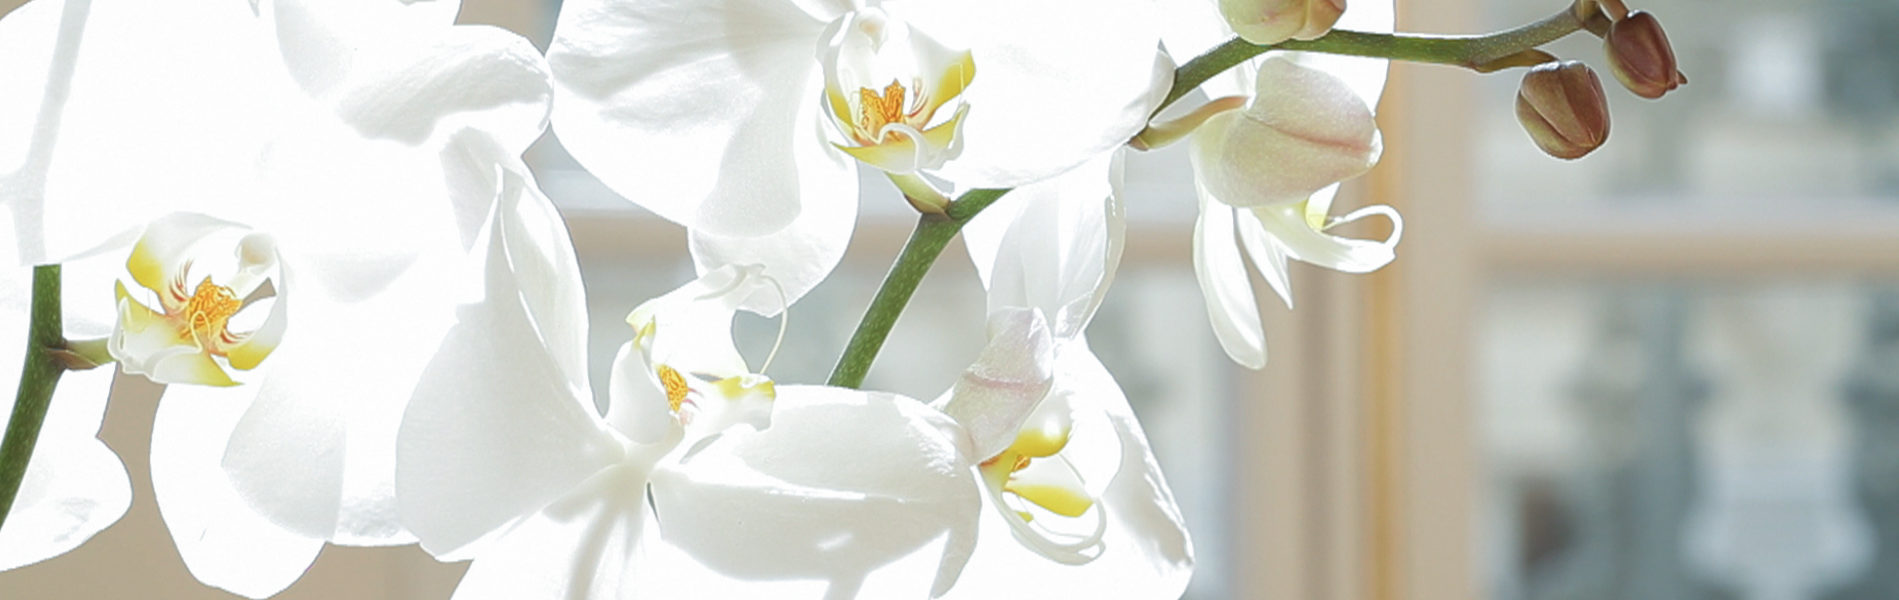 Orchidee translucide Lumiere